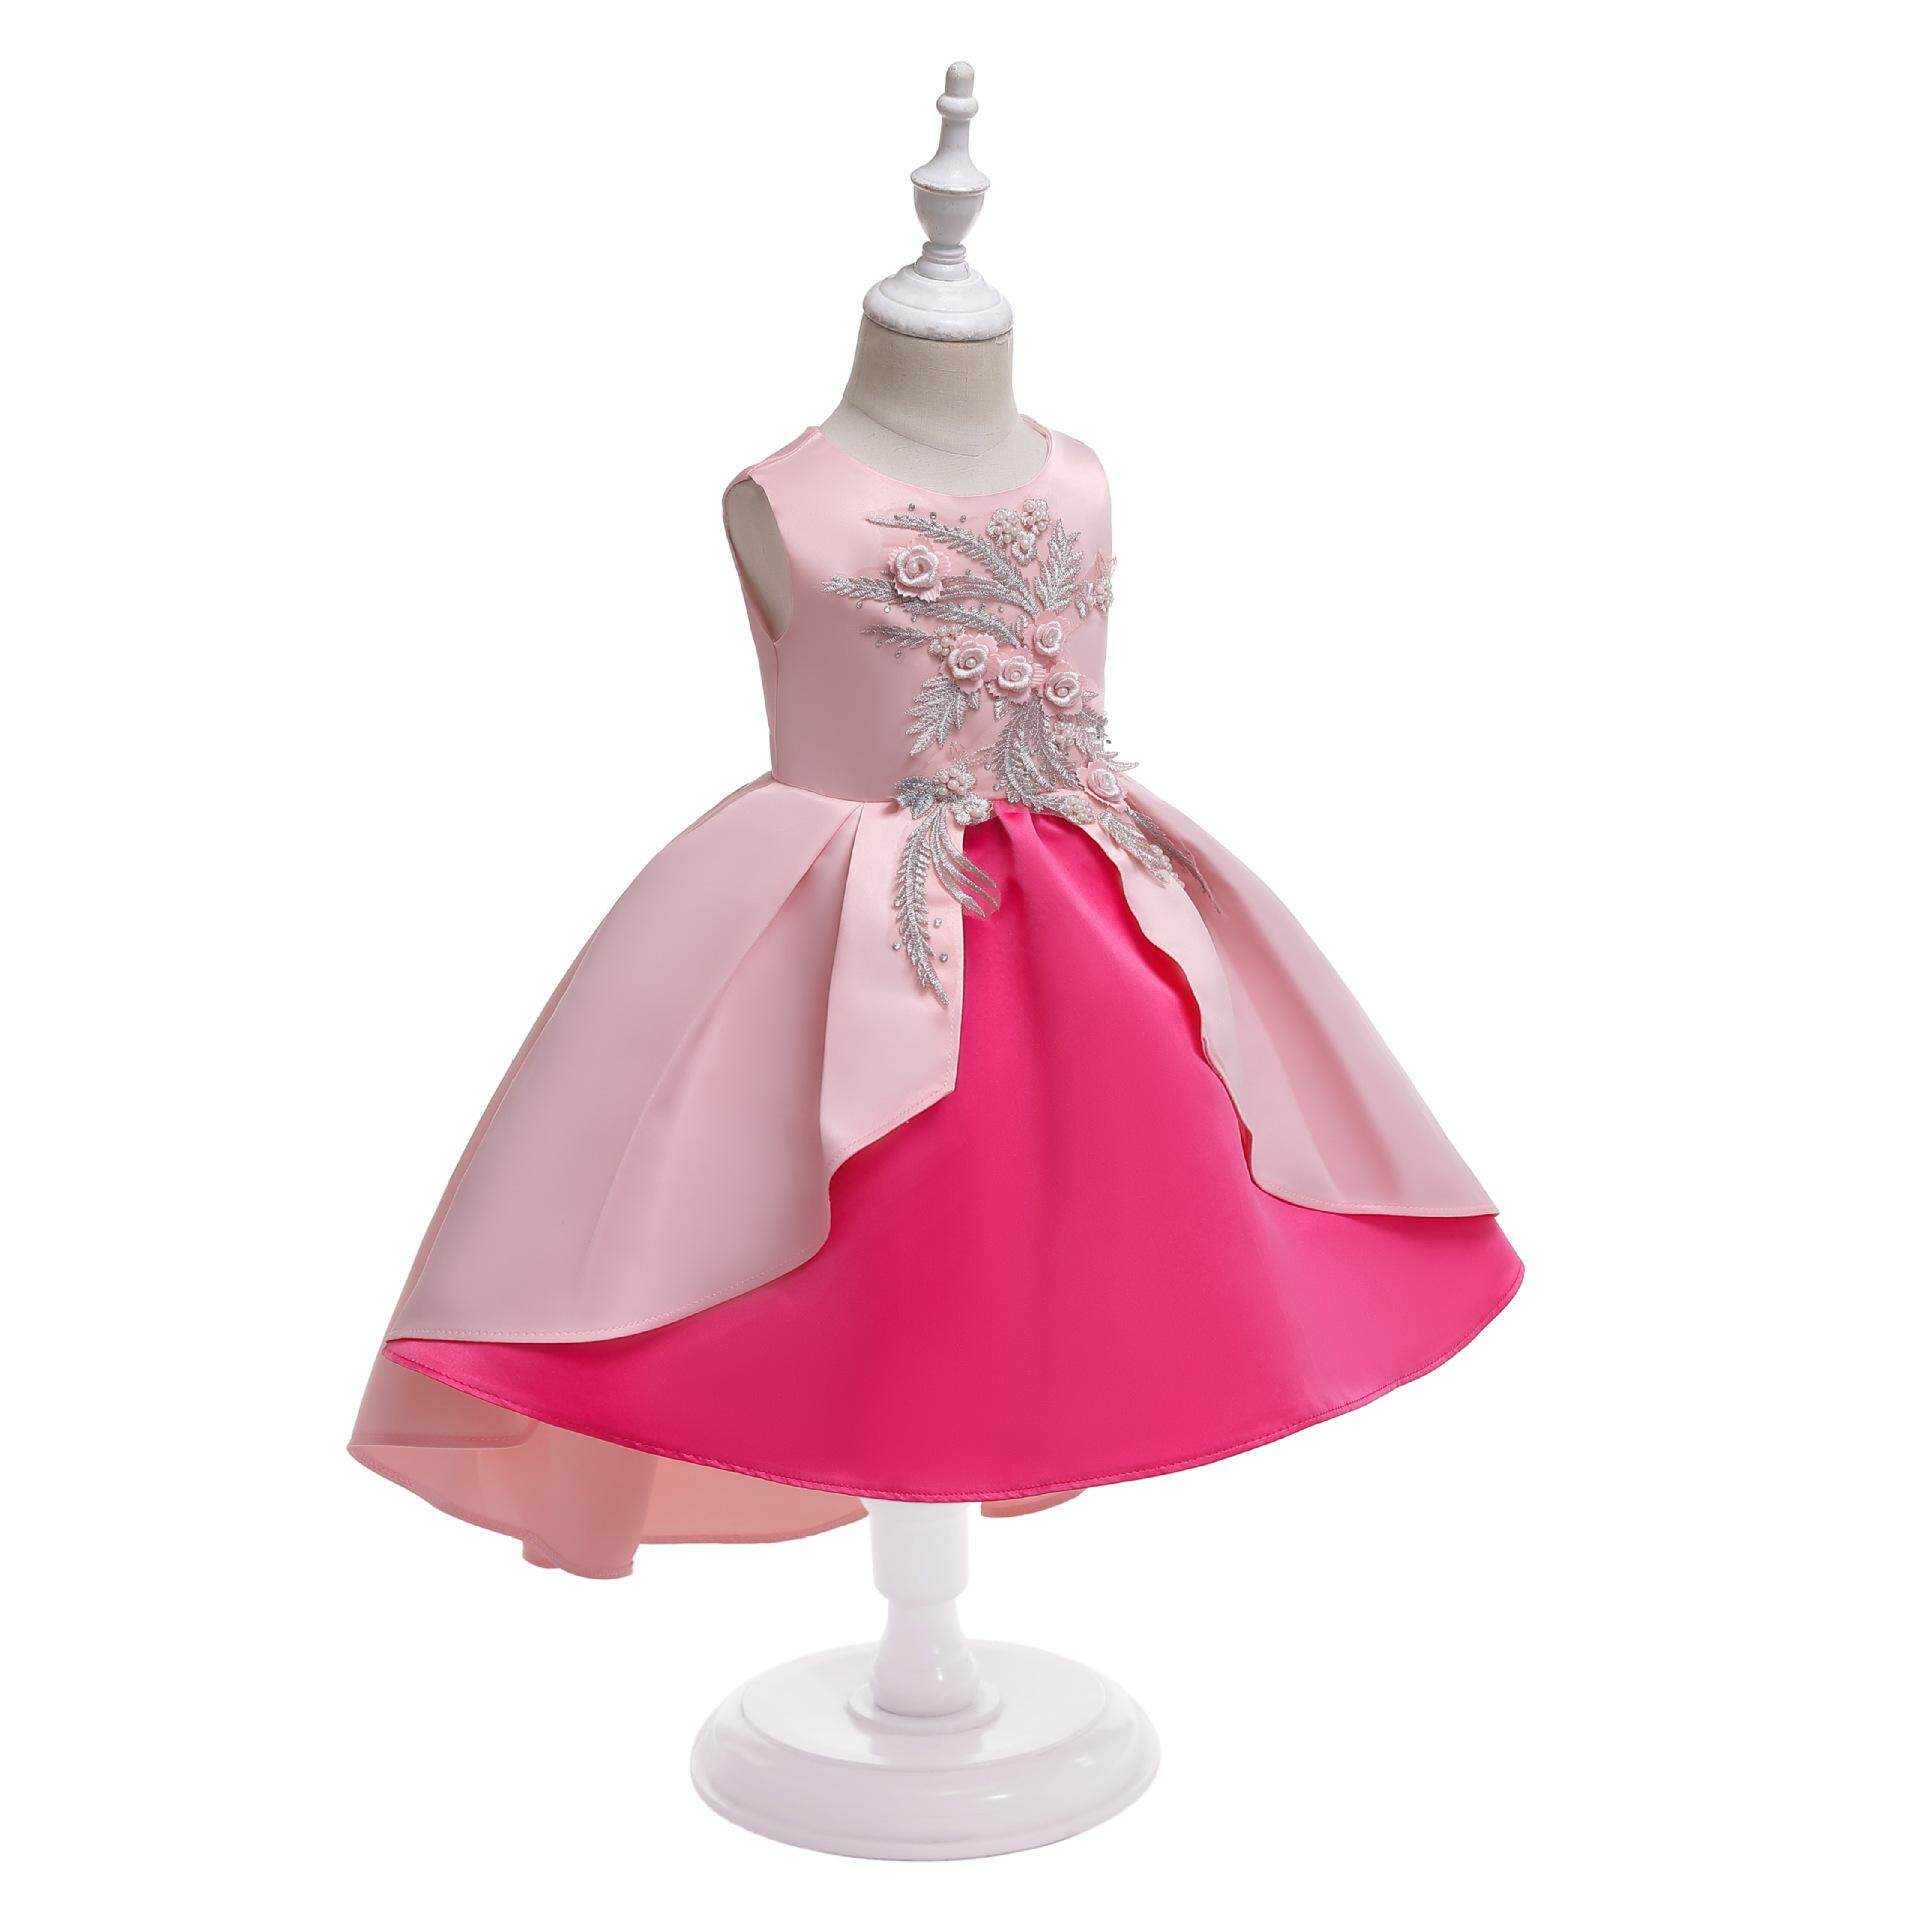 f90fdf442a036 Girls Dresses for sale - Dress for Girls Online Deals & Prices in ...